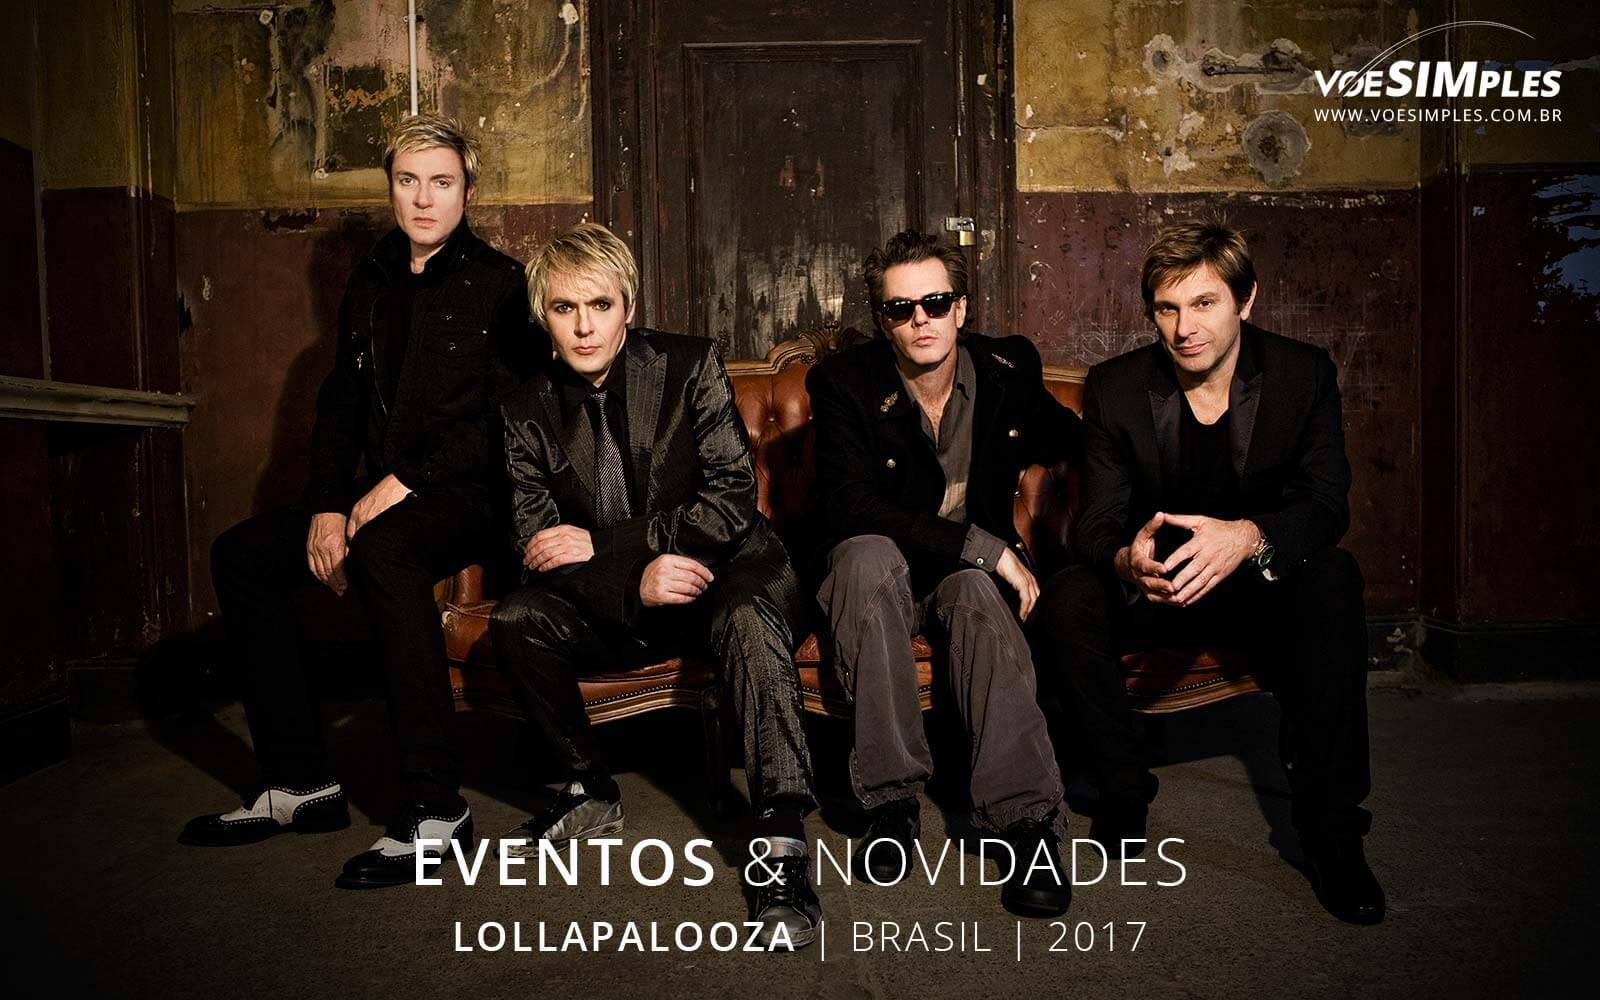 tipo-nome-brasil-2017-voesimples-passagens-aereas-promocionais-nome-passagens-promo-nome-2017-01